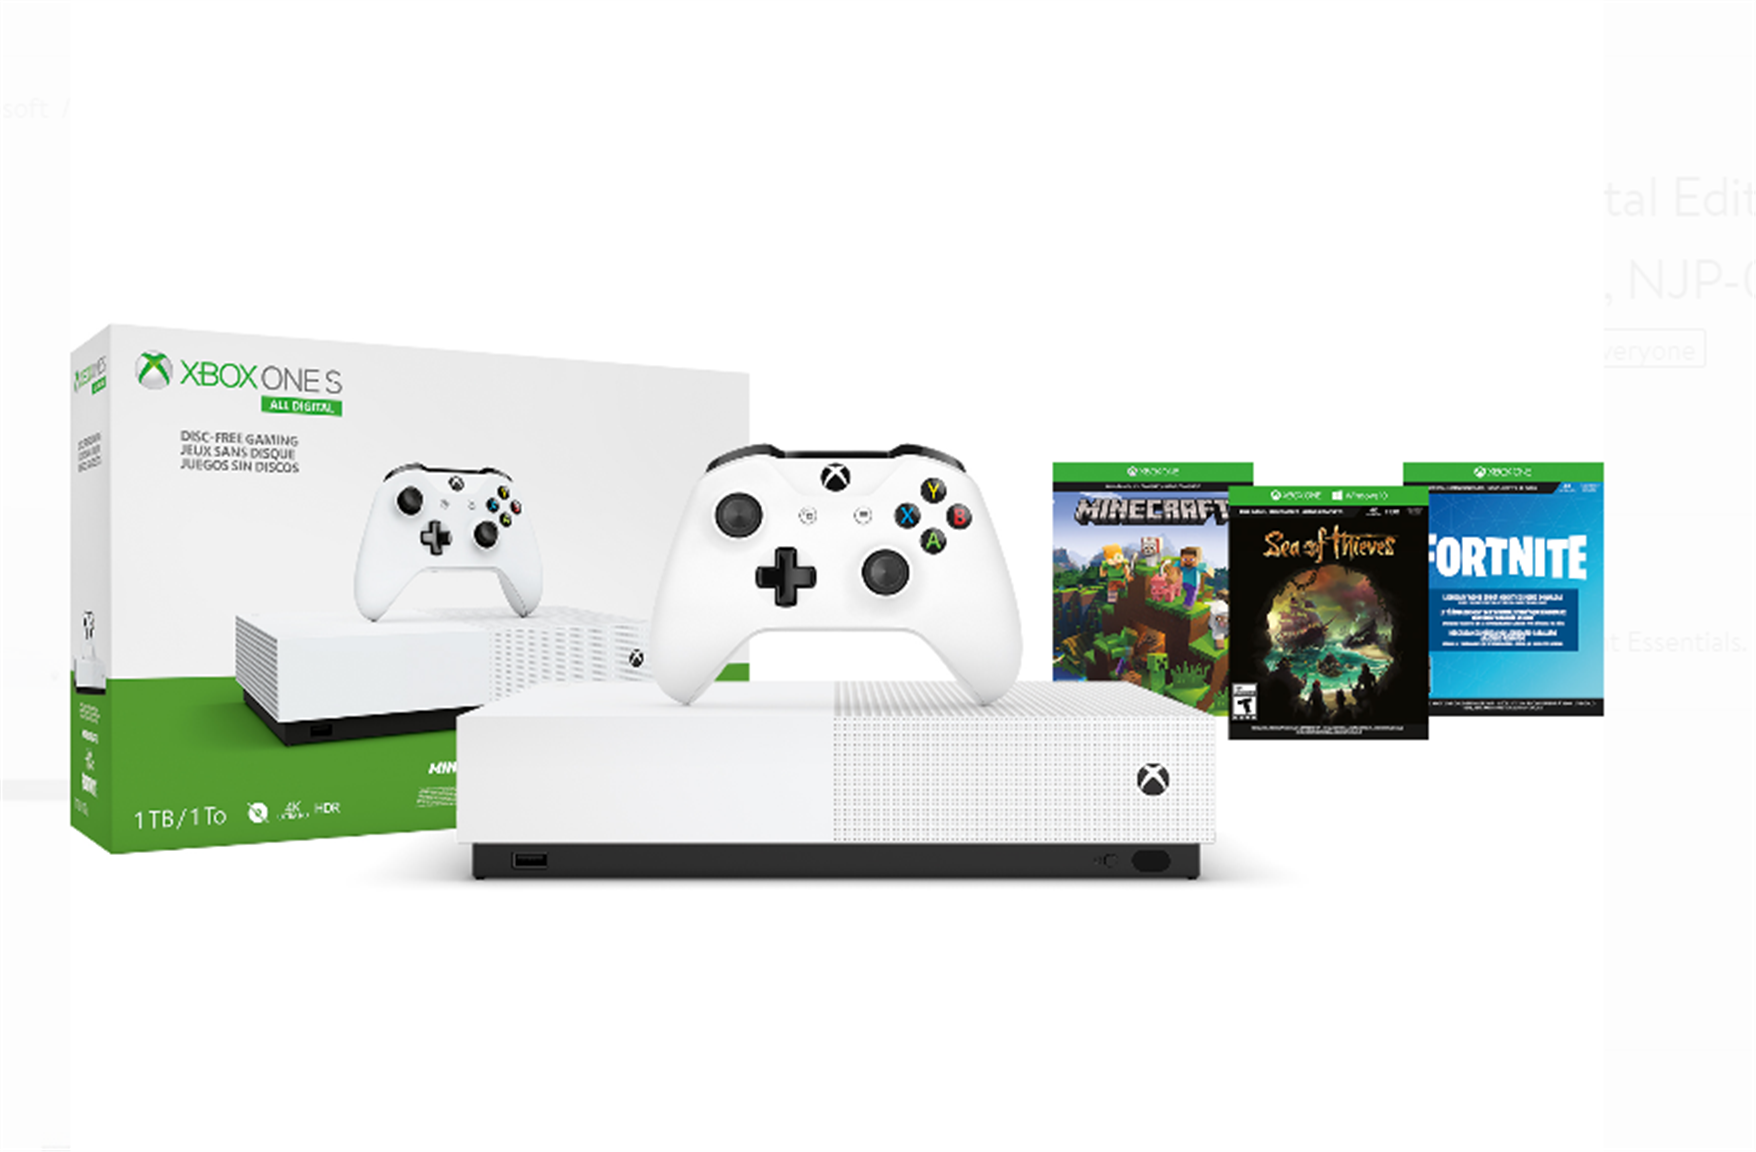 Microsoft Xbox One S 1TB All Digital Edition 3 Game Bundle (Disc-free Gaming) Only $149.00, Reg $249.99 + Free Shipping!